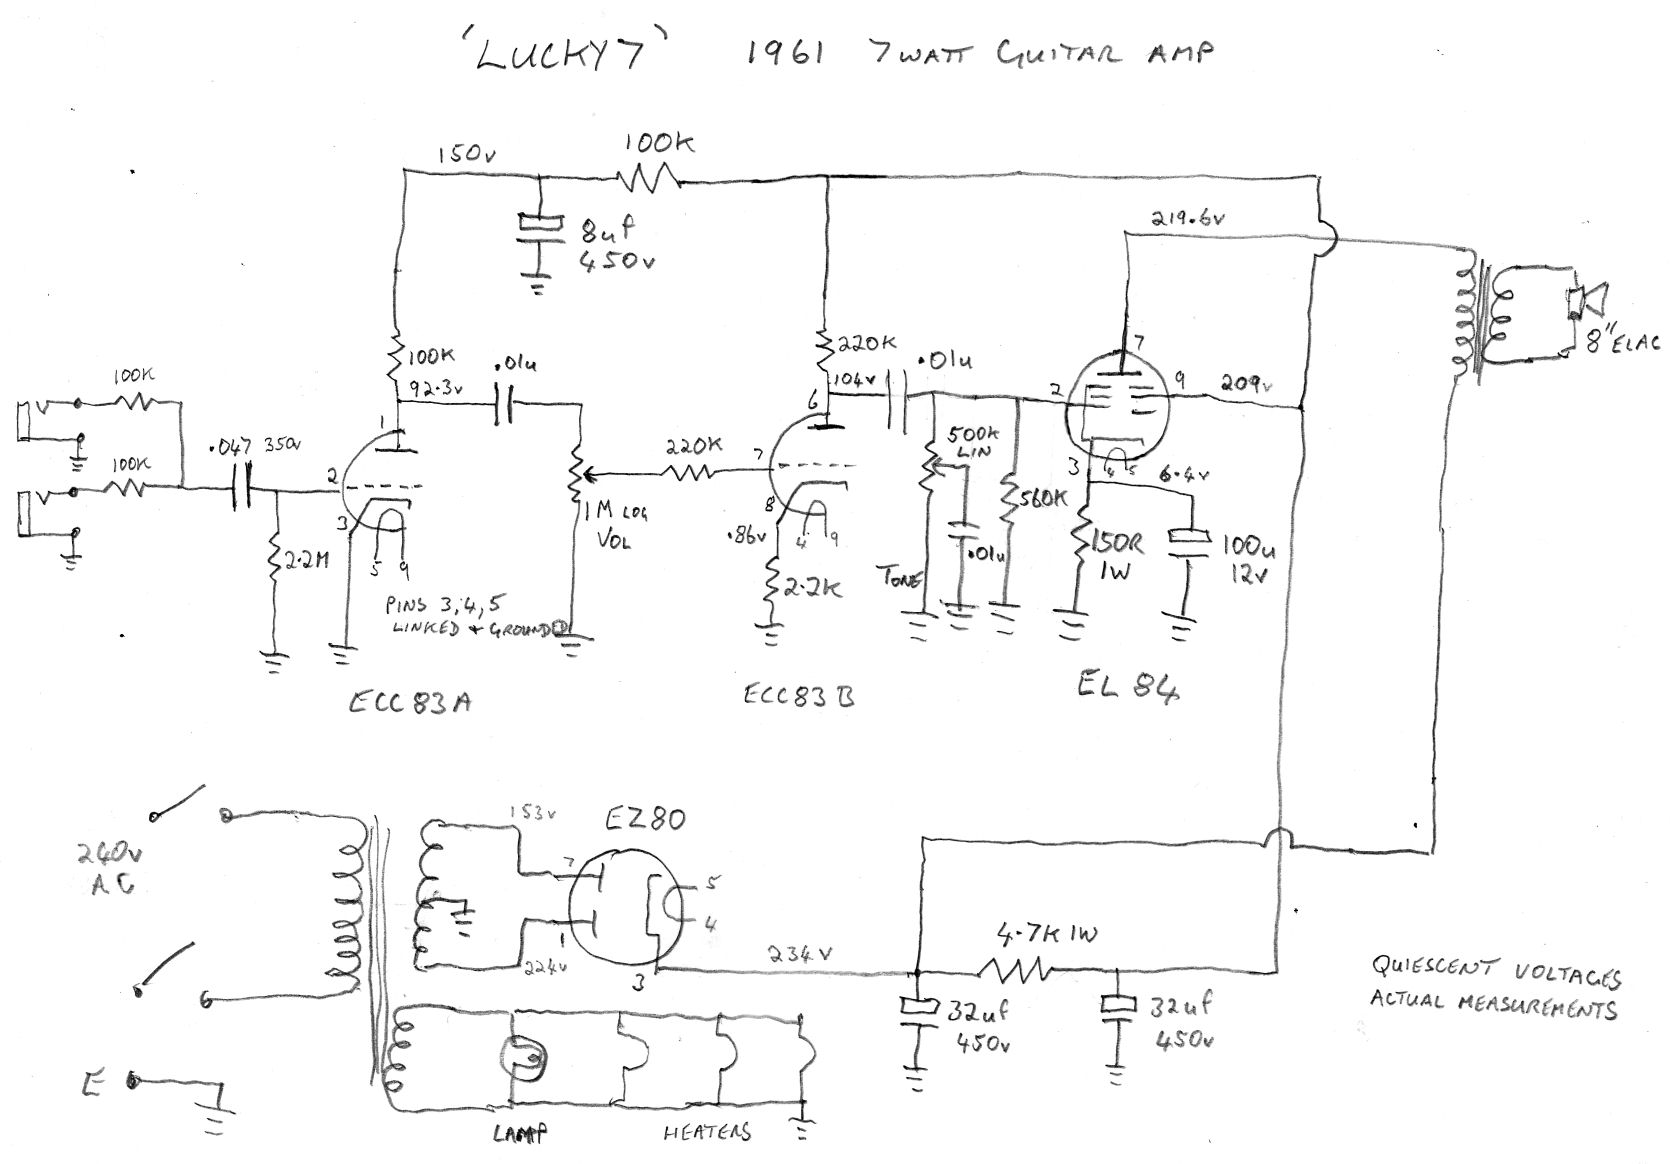 Simple Electric Guitar Amp Schematic All Kind Of Wiring Diagrams Amplifier Diagram 1 Watt Tube Get Free Image About Switcher